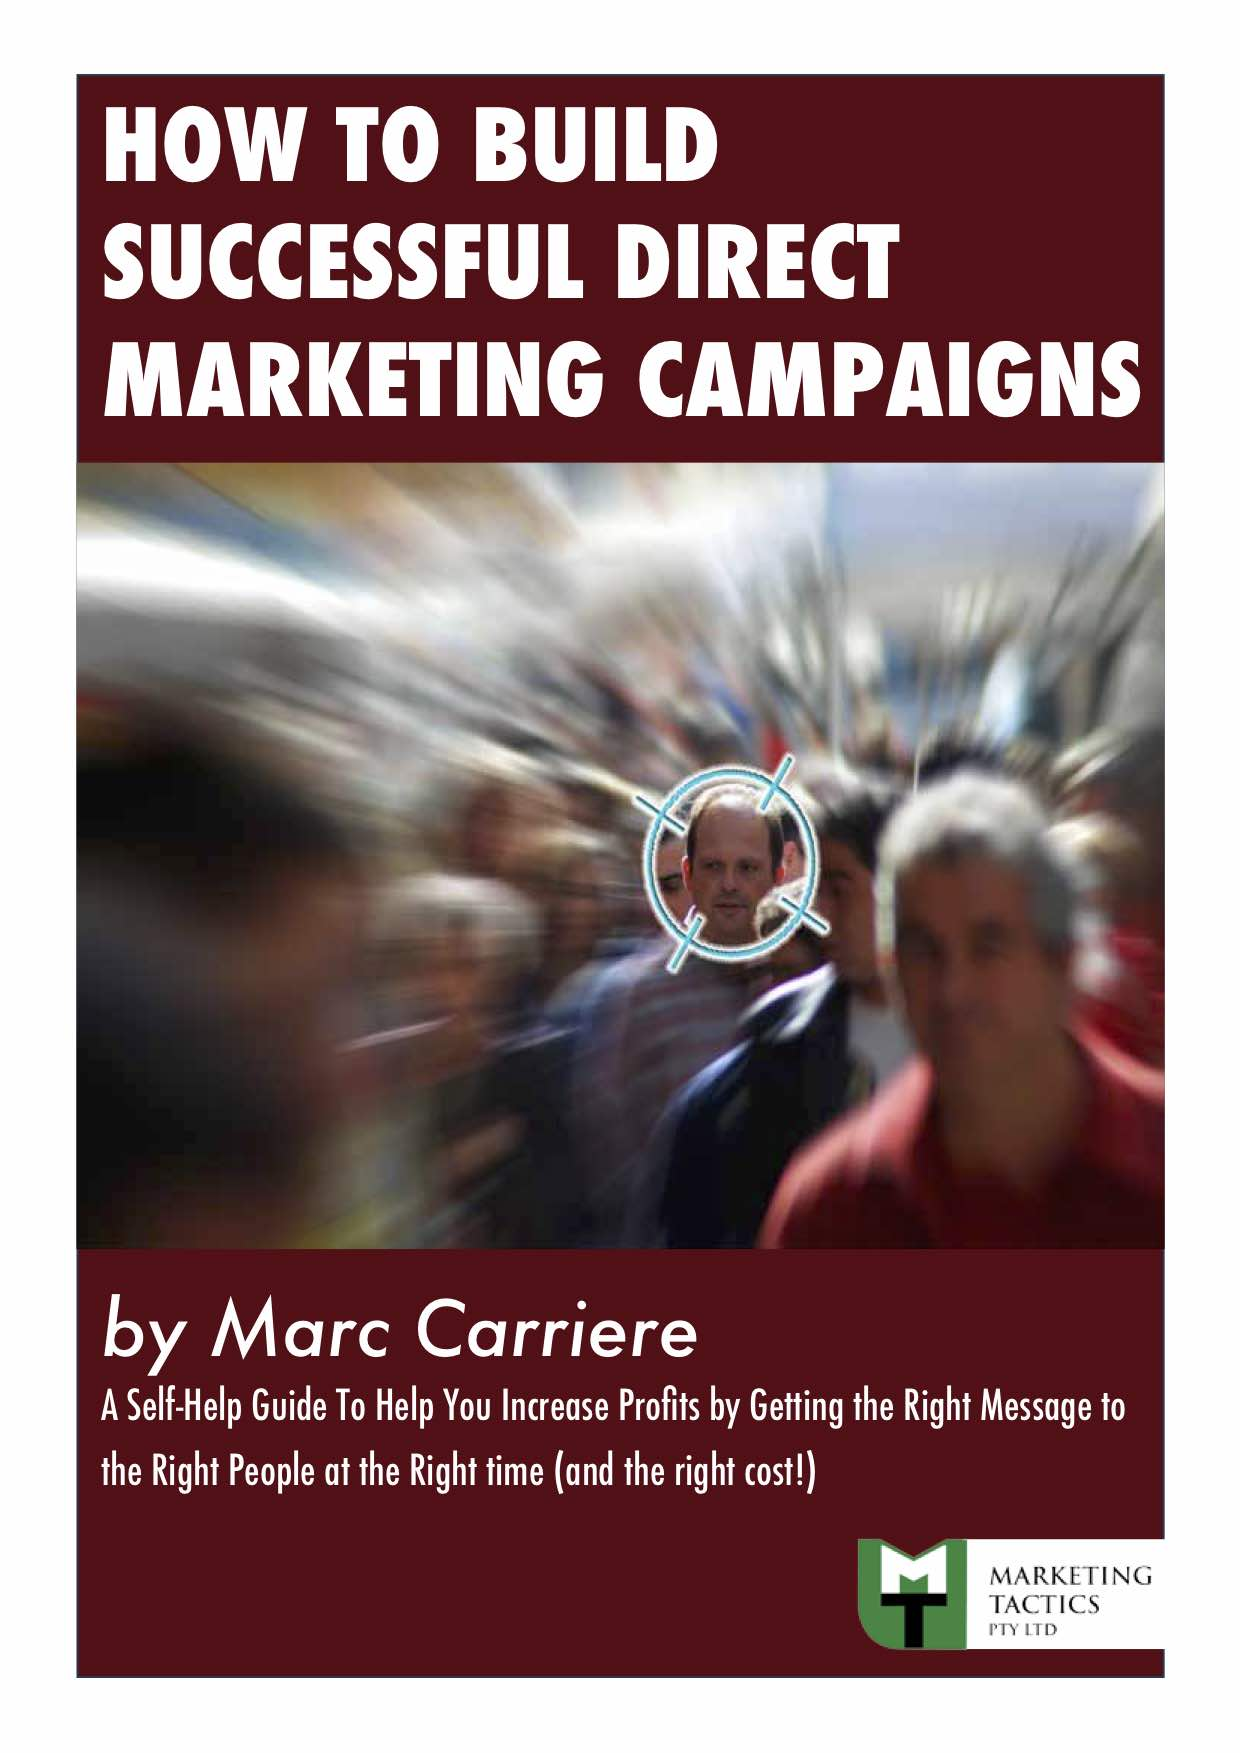 How to Build Successful Marketing Campaigns cover